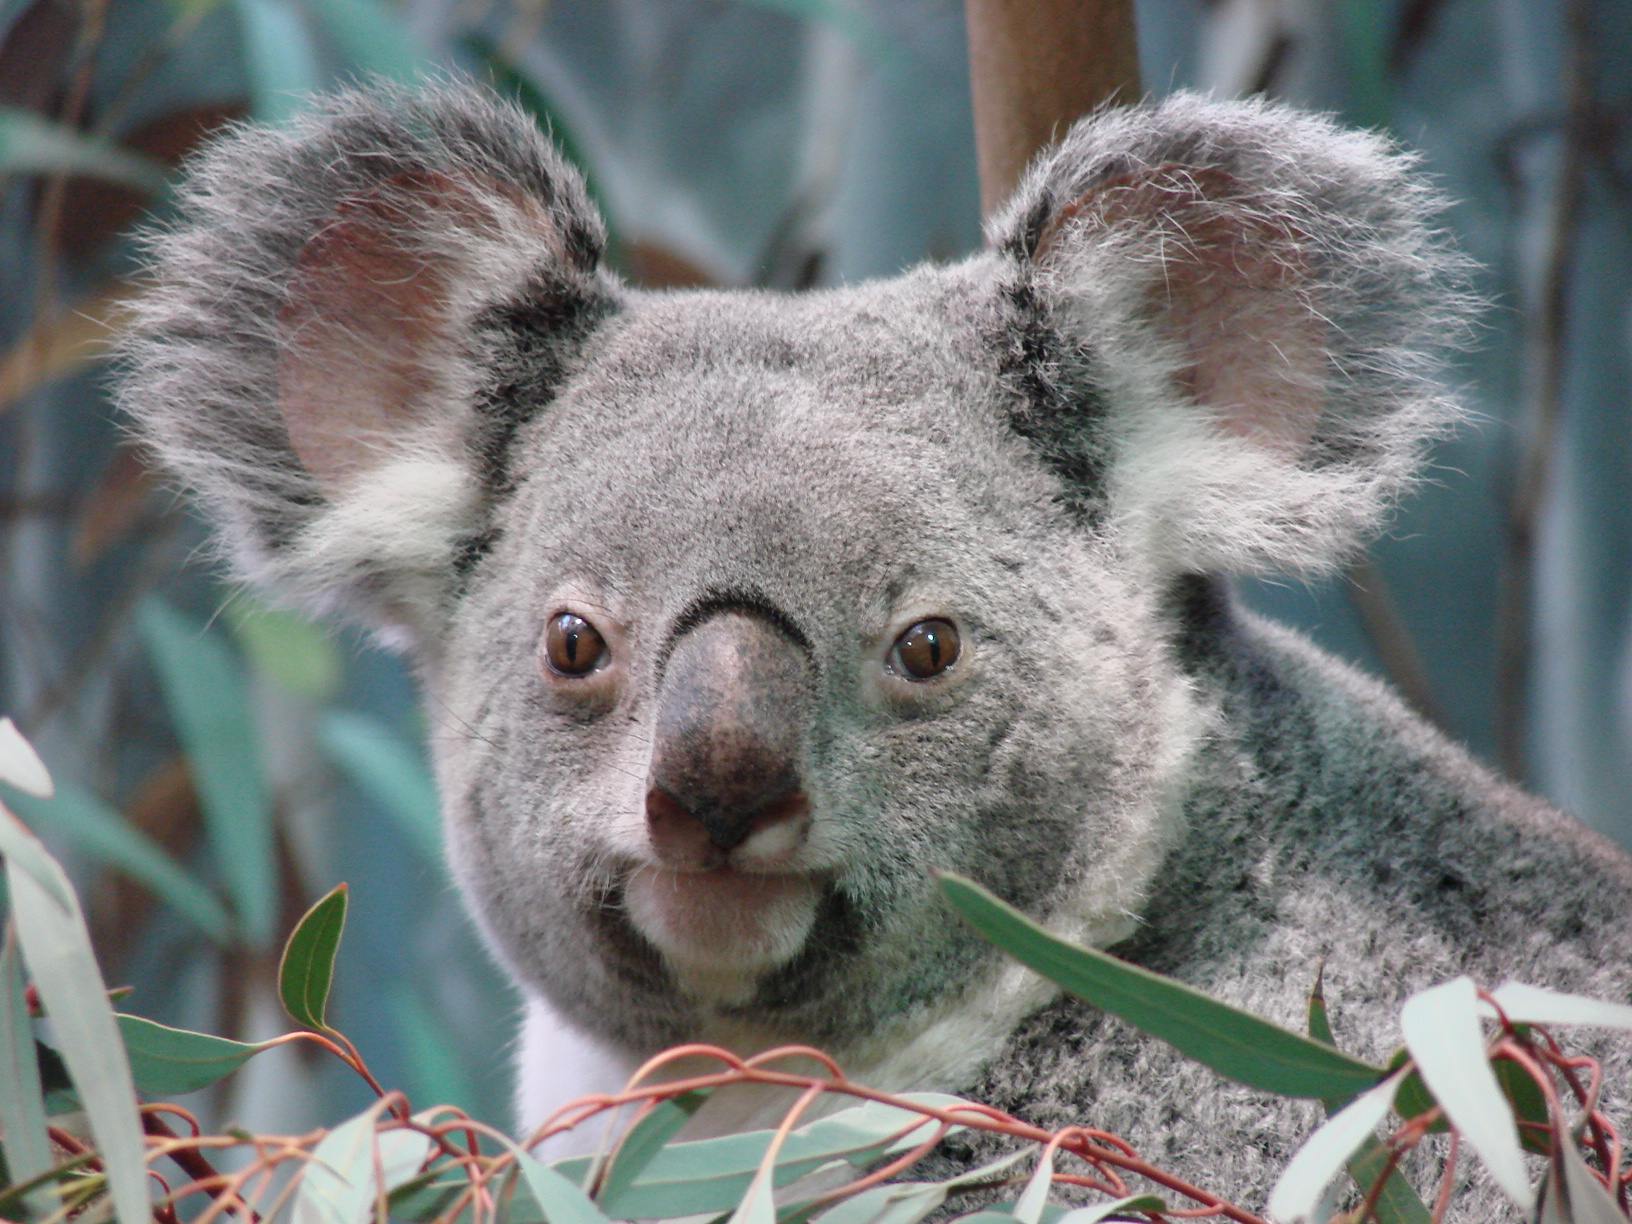 Koala named Midgee | Flickr - Photo Sharing!